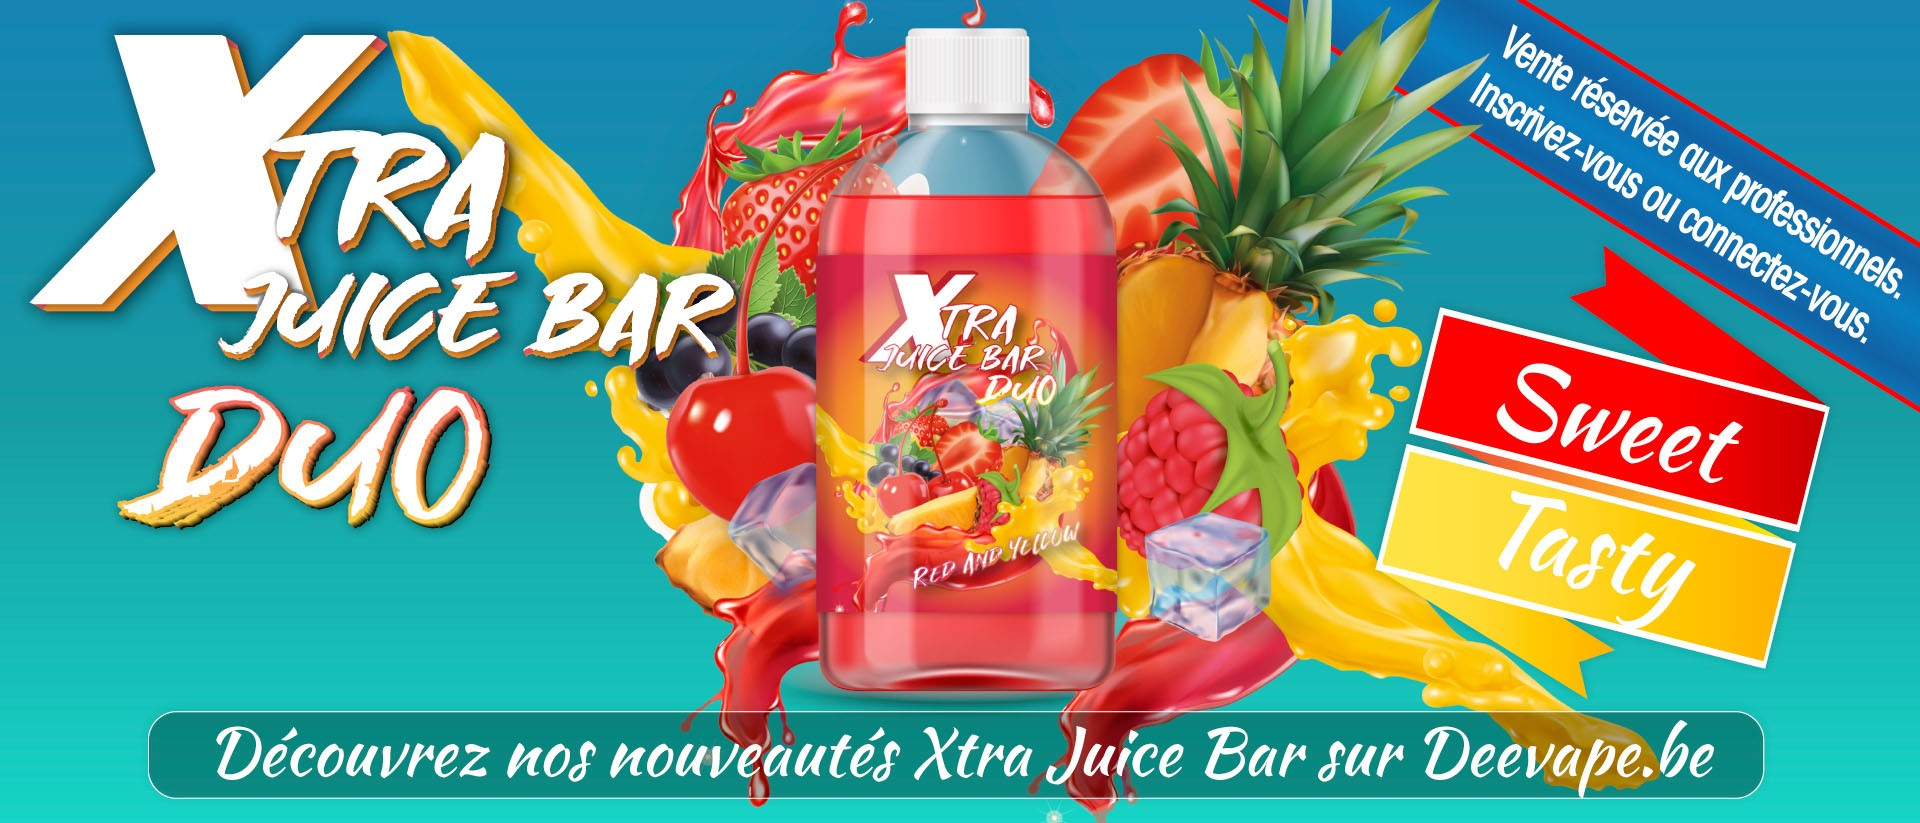 NOUVEAU XTRA JUICE BAR DUO RED AND YELLOW